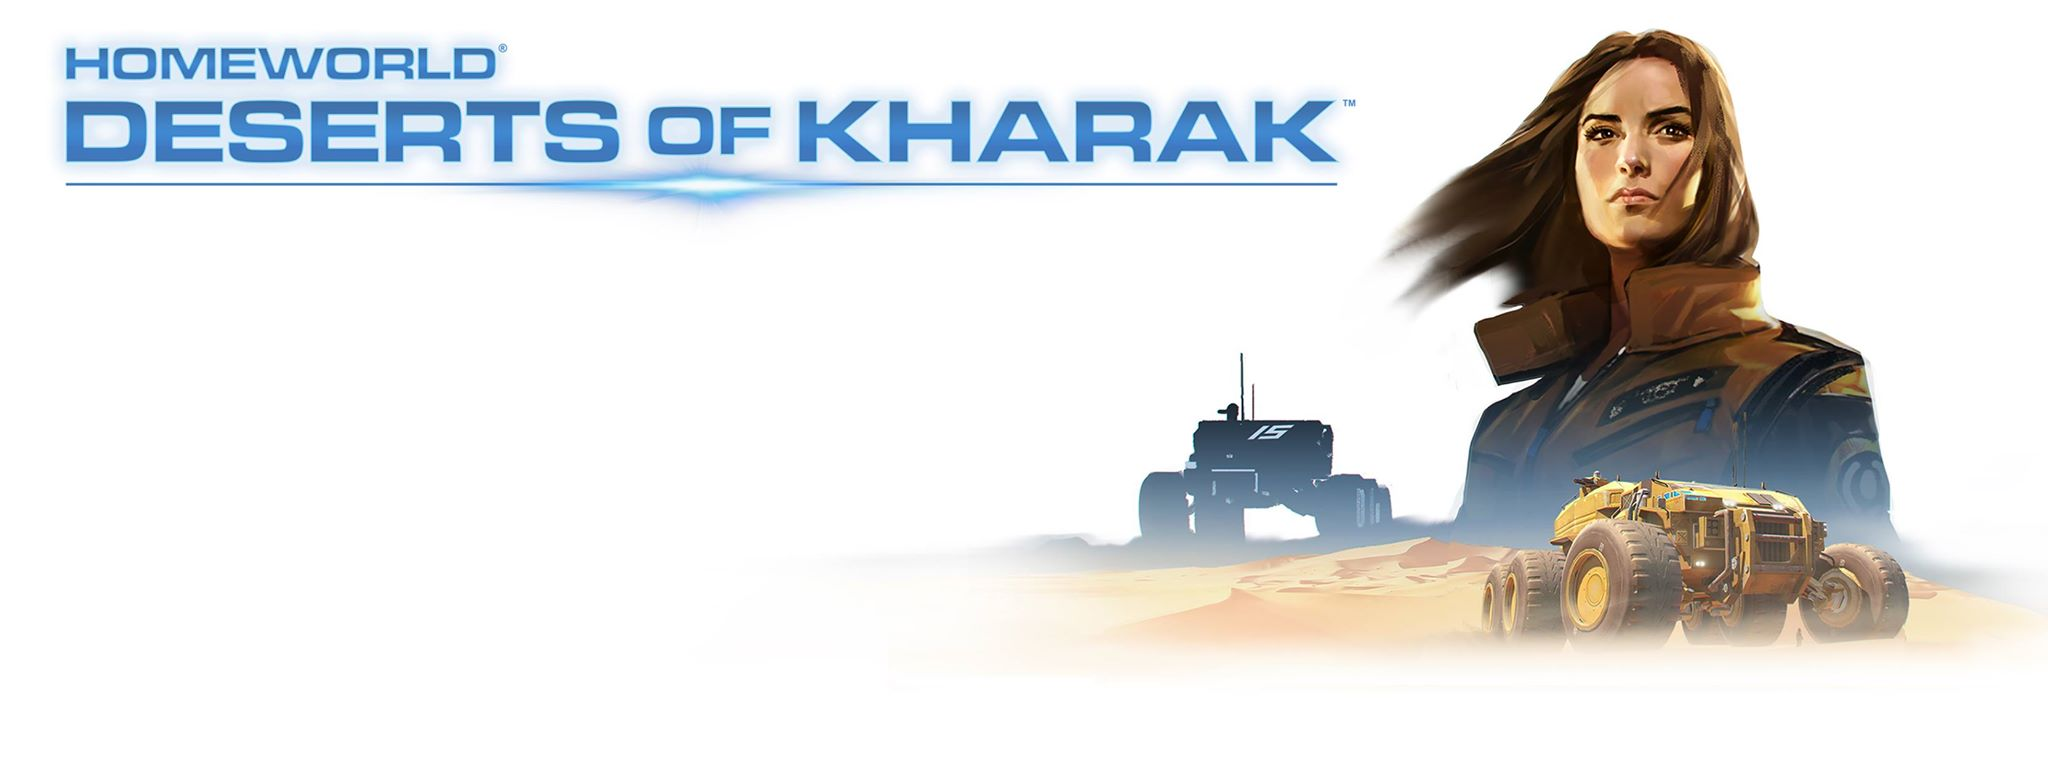 Facebook Header - Deserts of Kharak - Concept Art